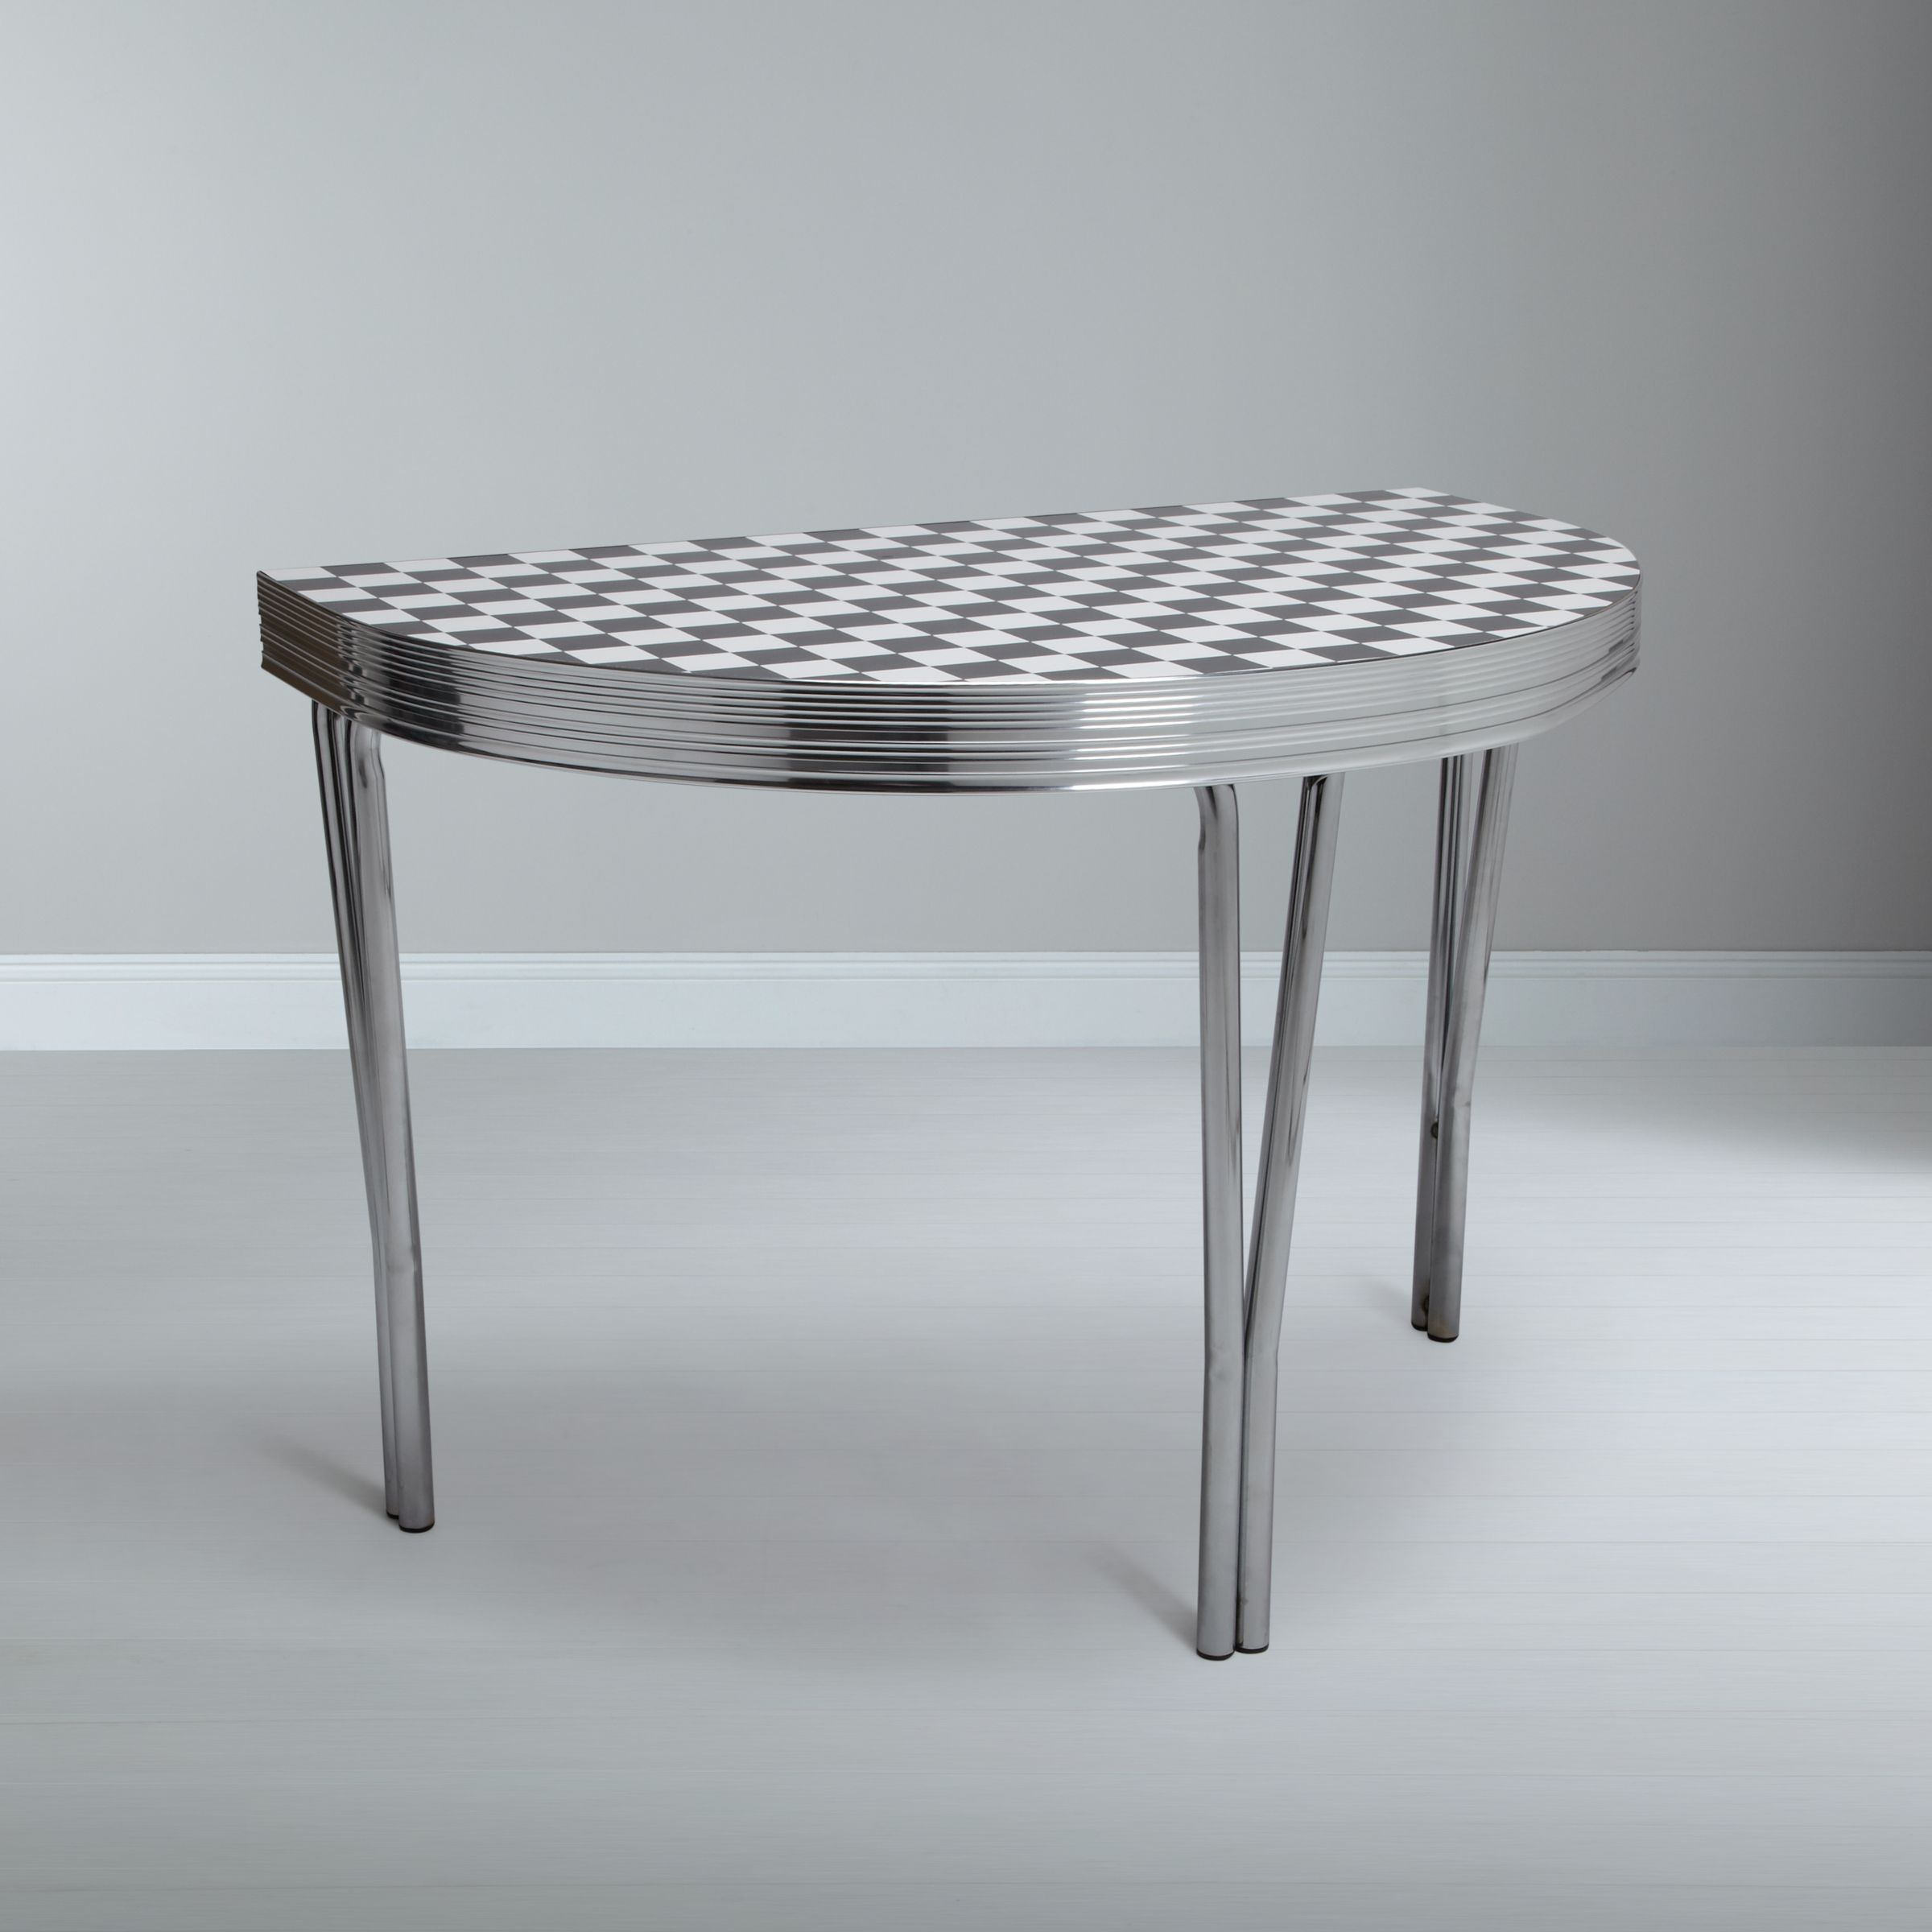 Half moon table Shop for cheap Furniture and Save online : 231569759zoom from priceinspector.co.uk size 1600 x 1600 jpeg 199kB